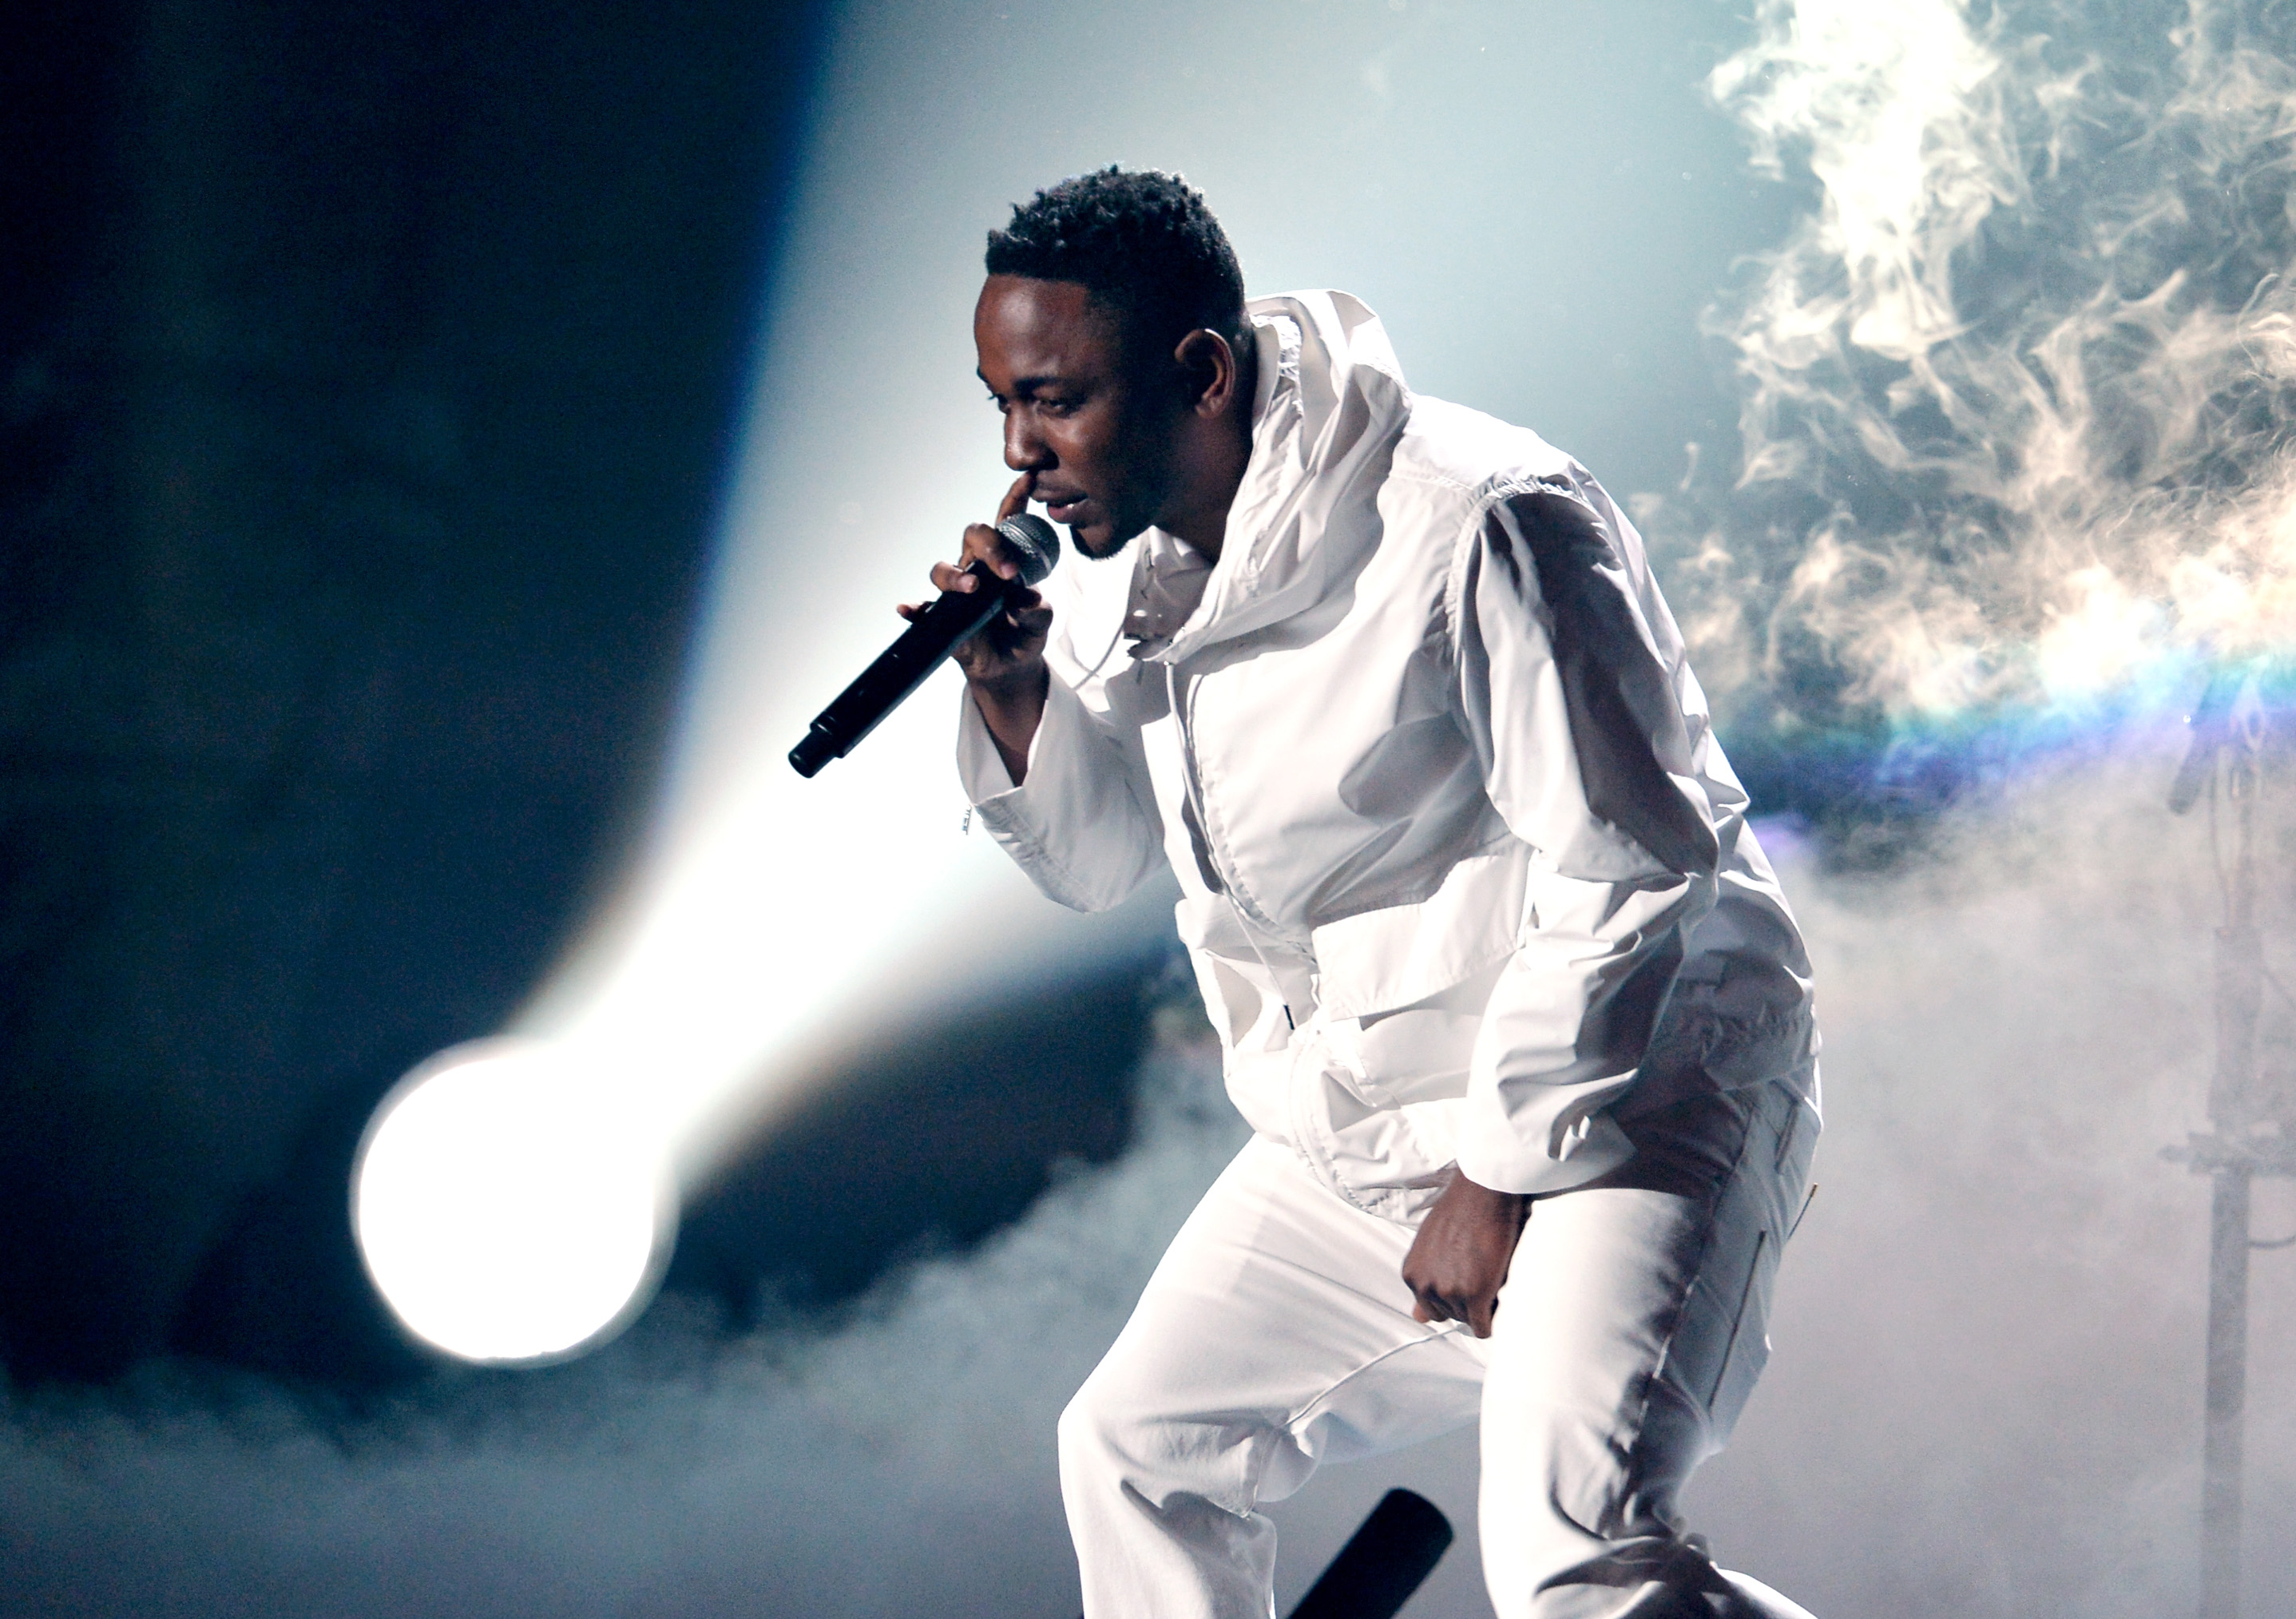 LOS ANGELES, CA - JANUARY 26:  Rapper Kendrick Lamar performs onstage during the 56th GRAMMY Awards at Staples Center on Janu